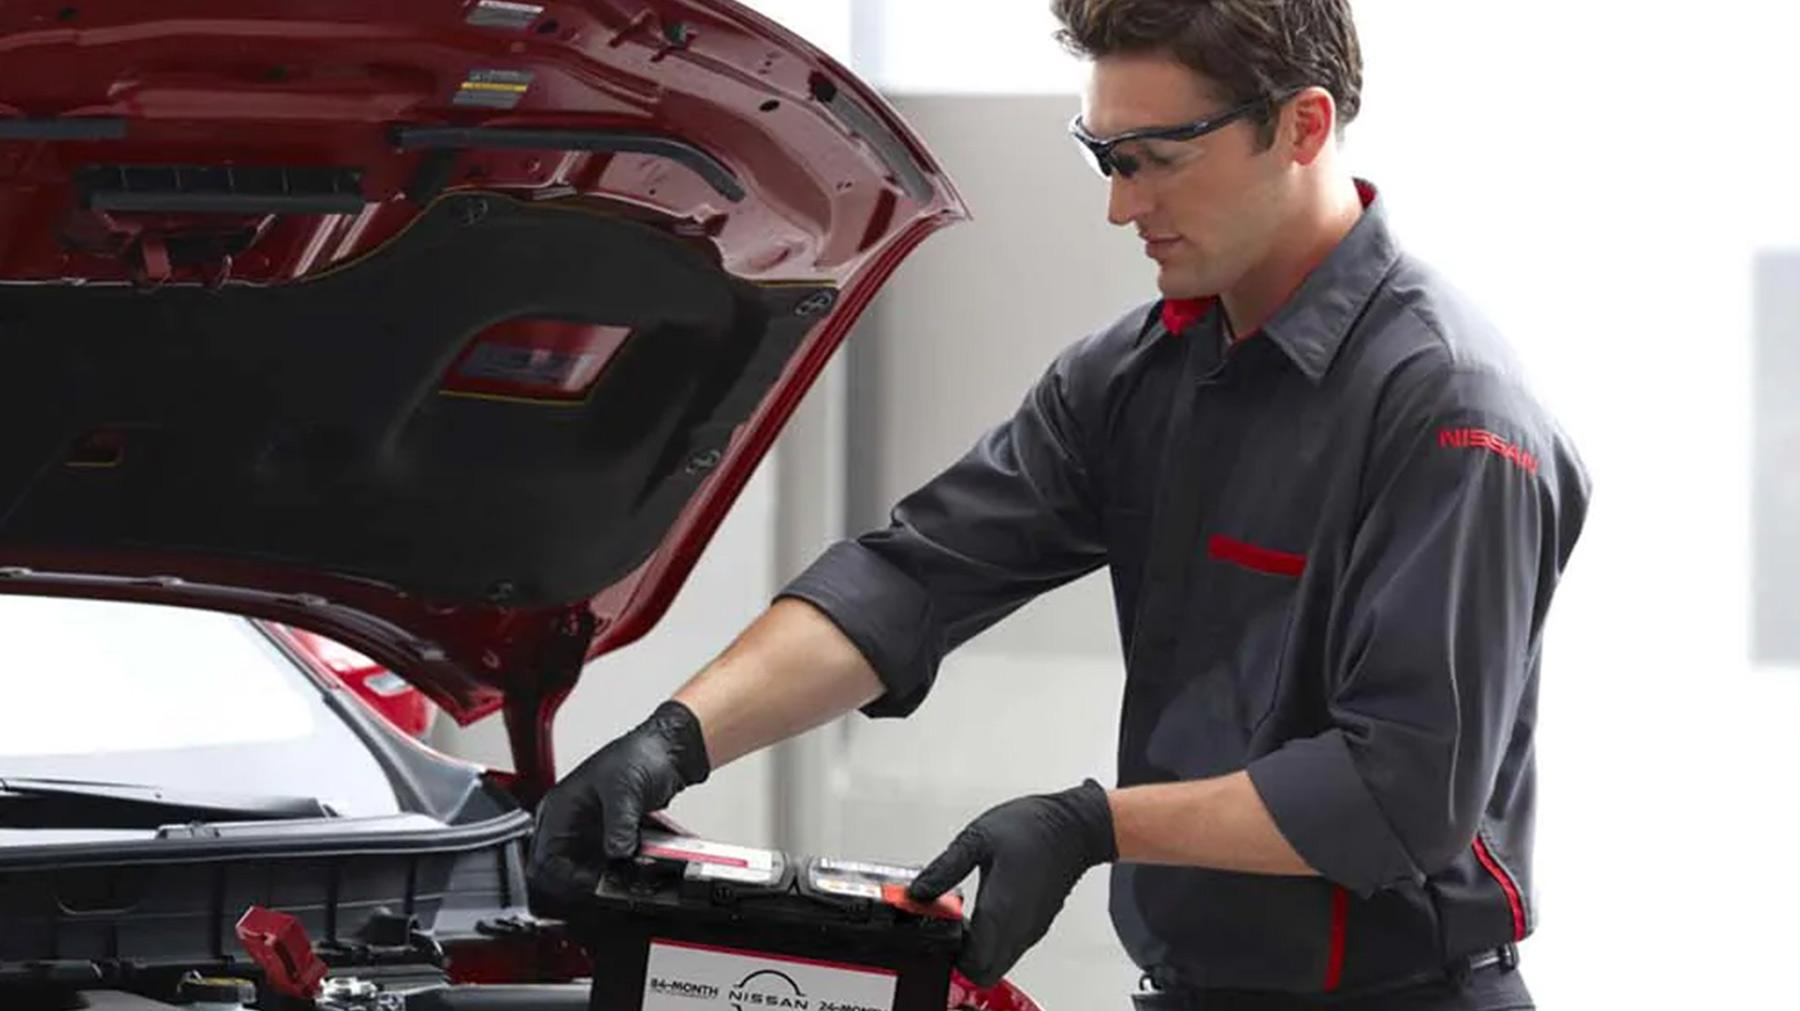 Nissan Technician doing a inspection on a vehicle